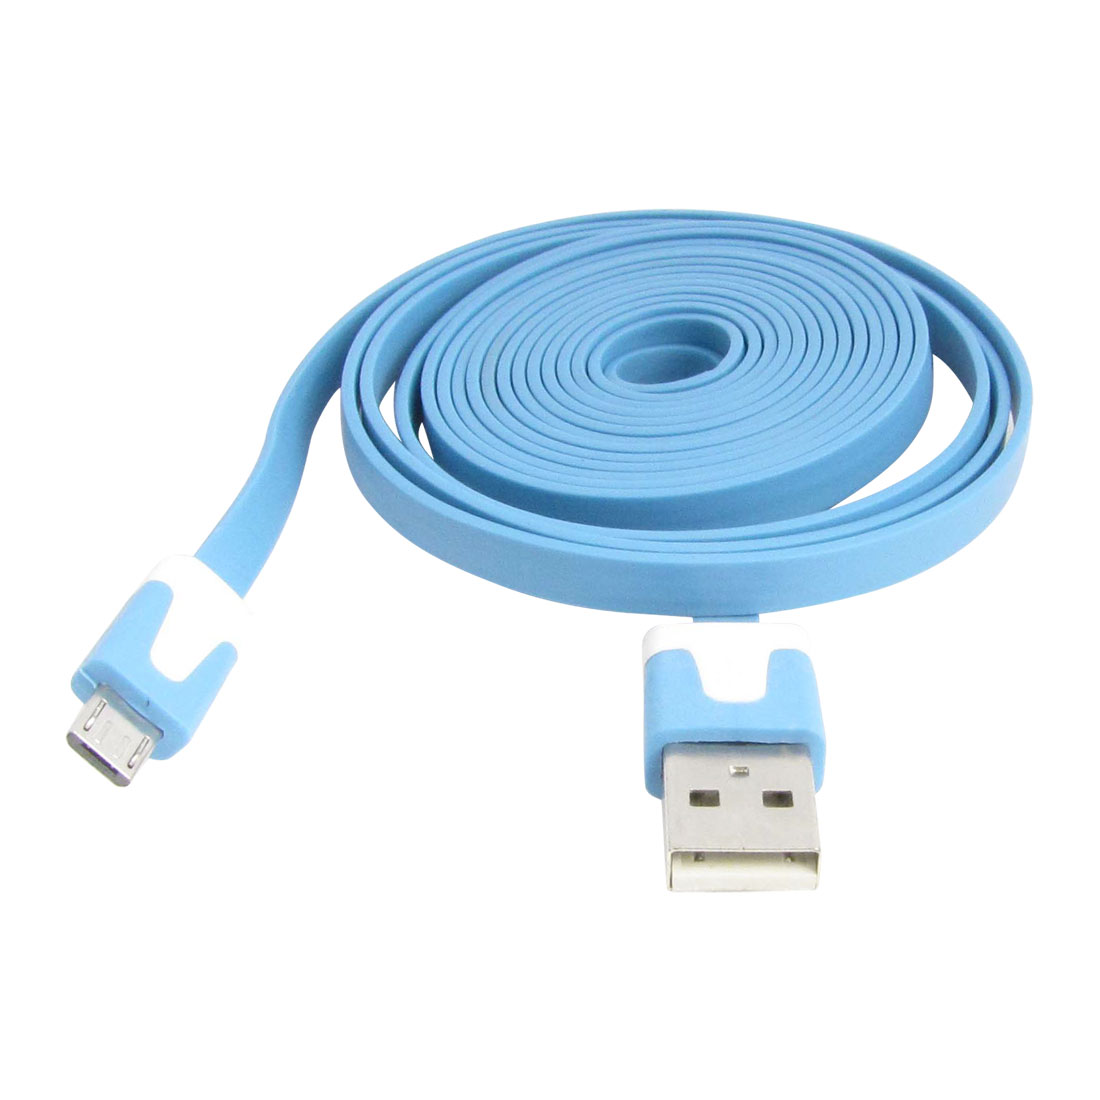 Flat Soft 2 Meters Micro USB Data Charging Extension Cable Blue for Motorola V8